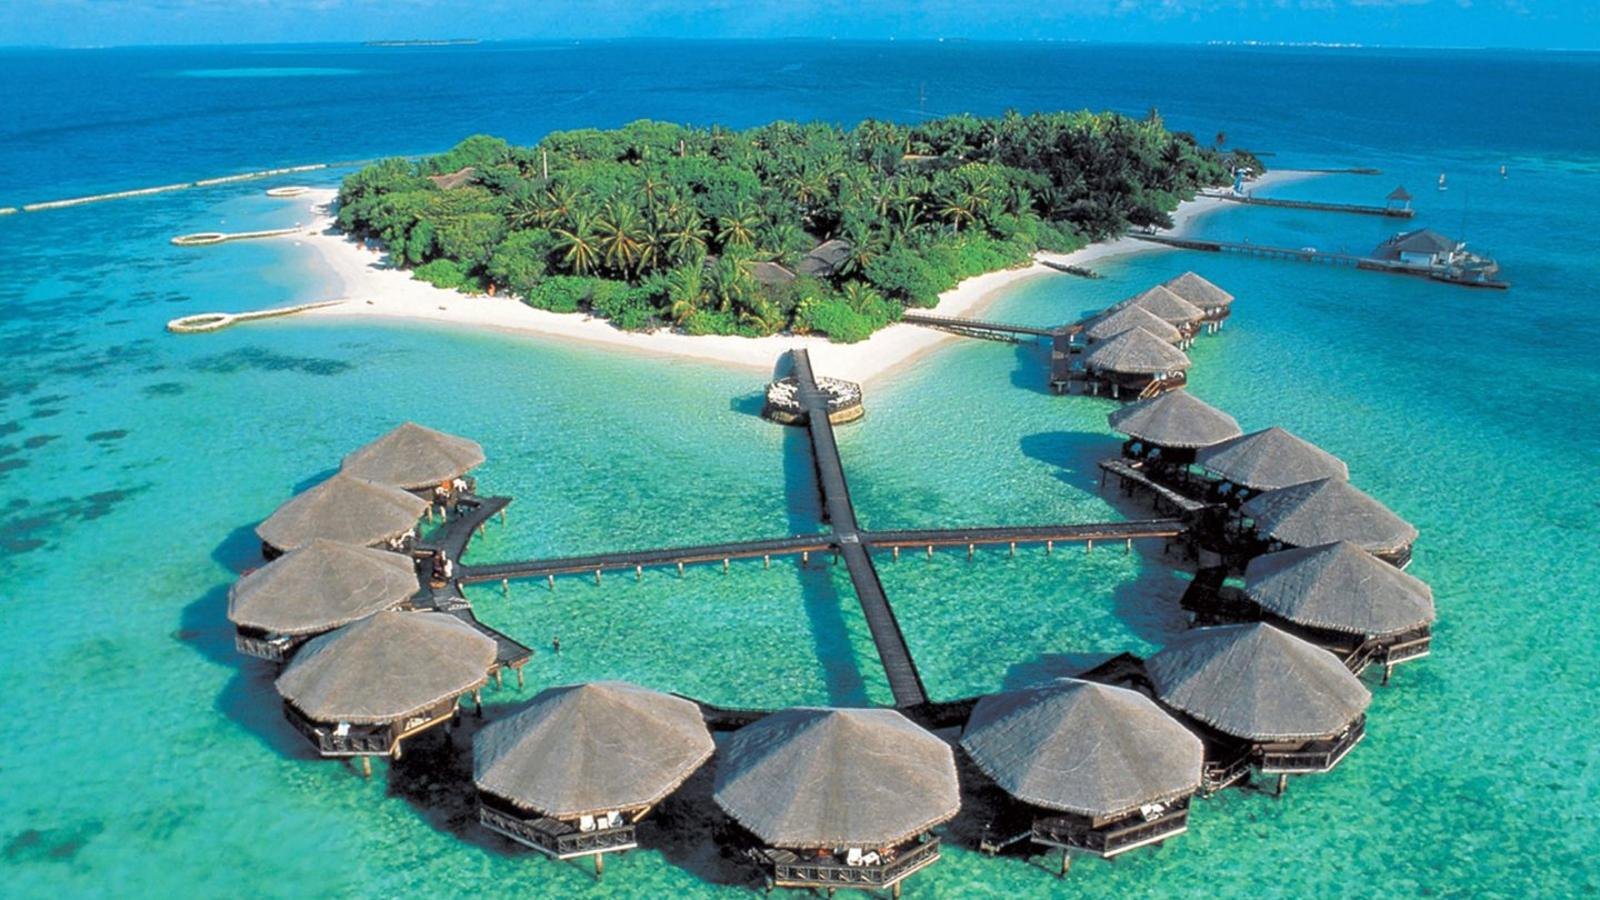 maldives-baros-island-resort_edl7bi